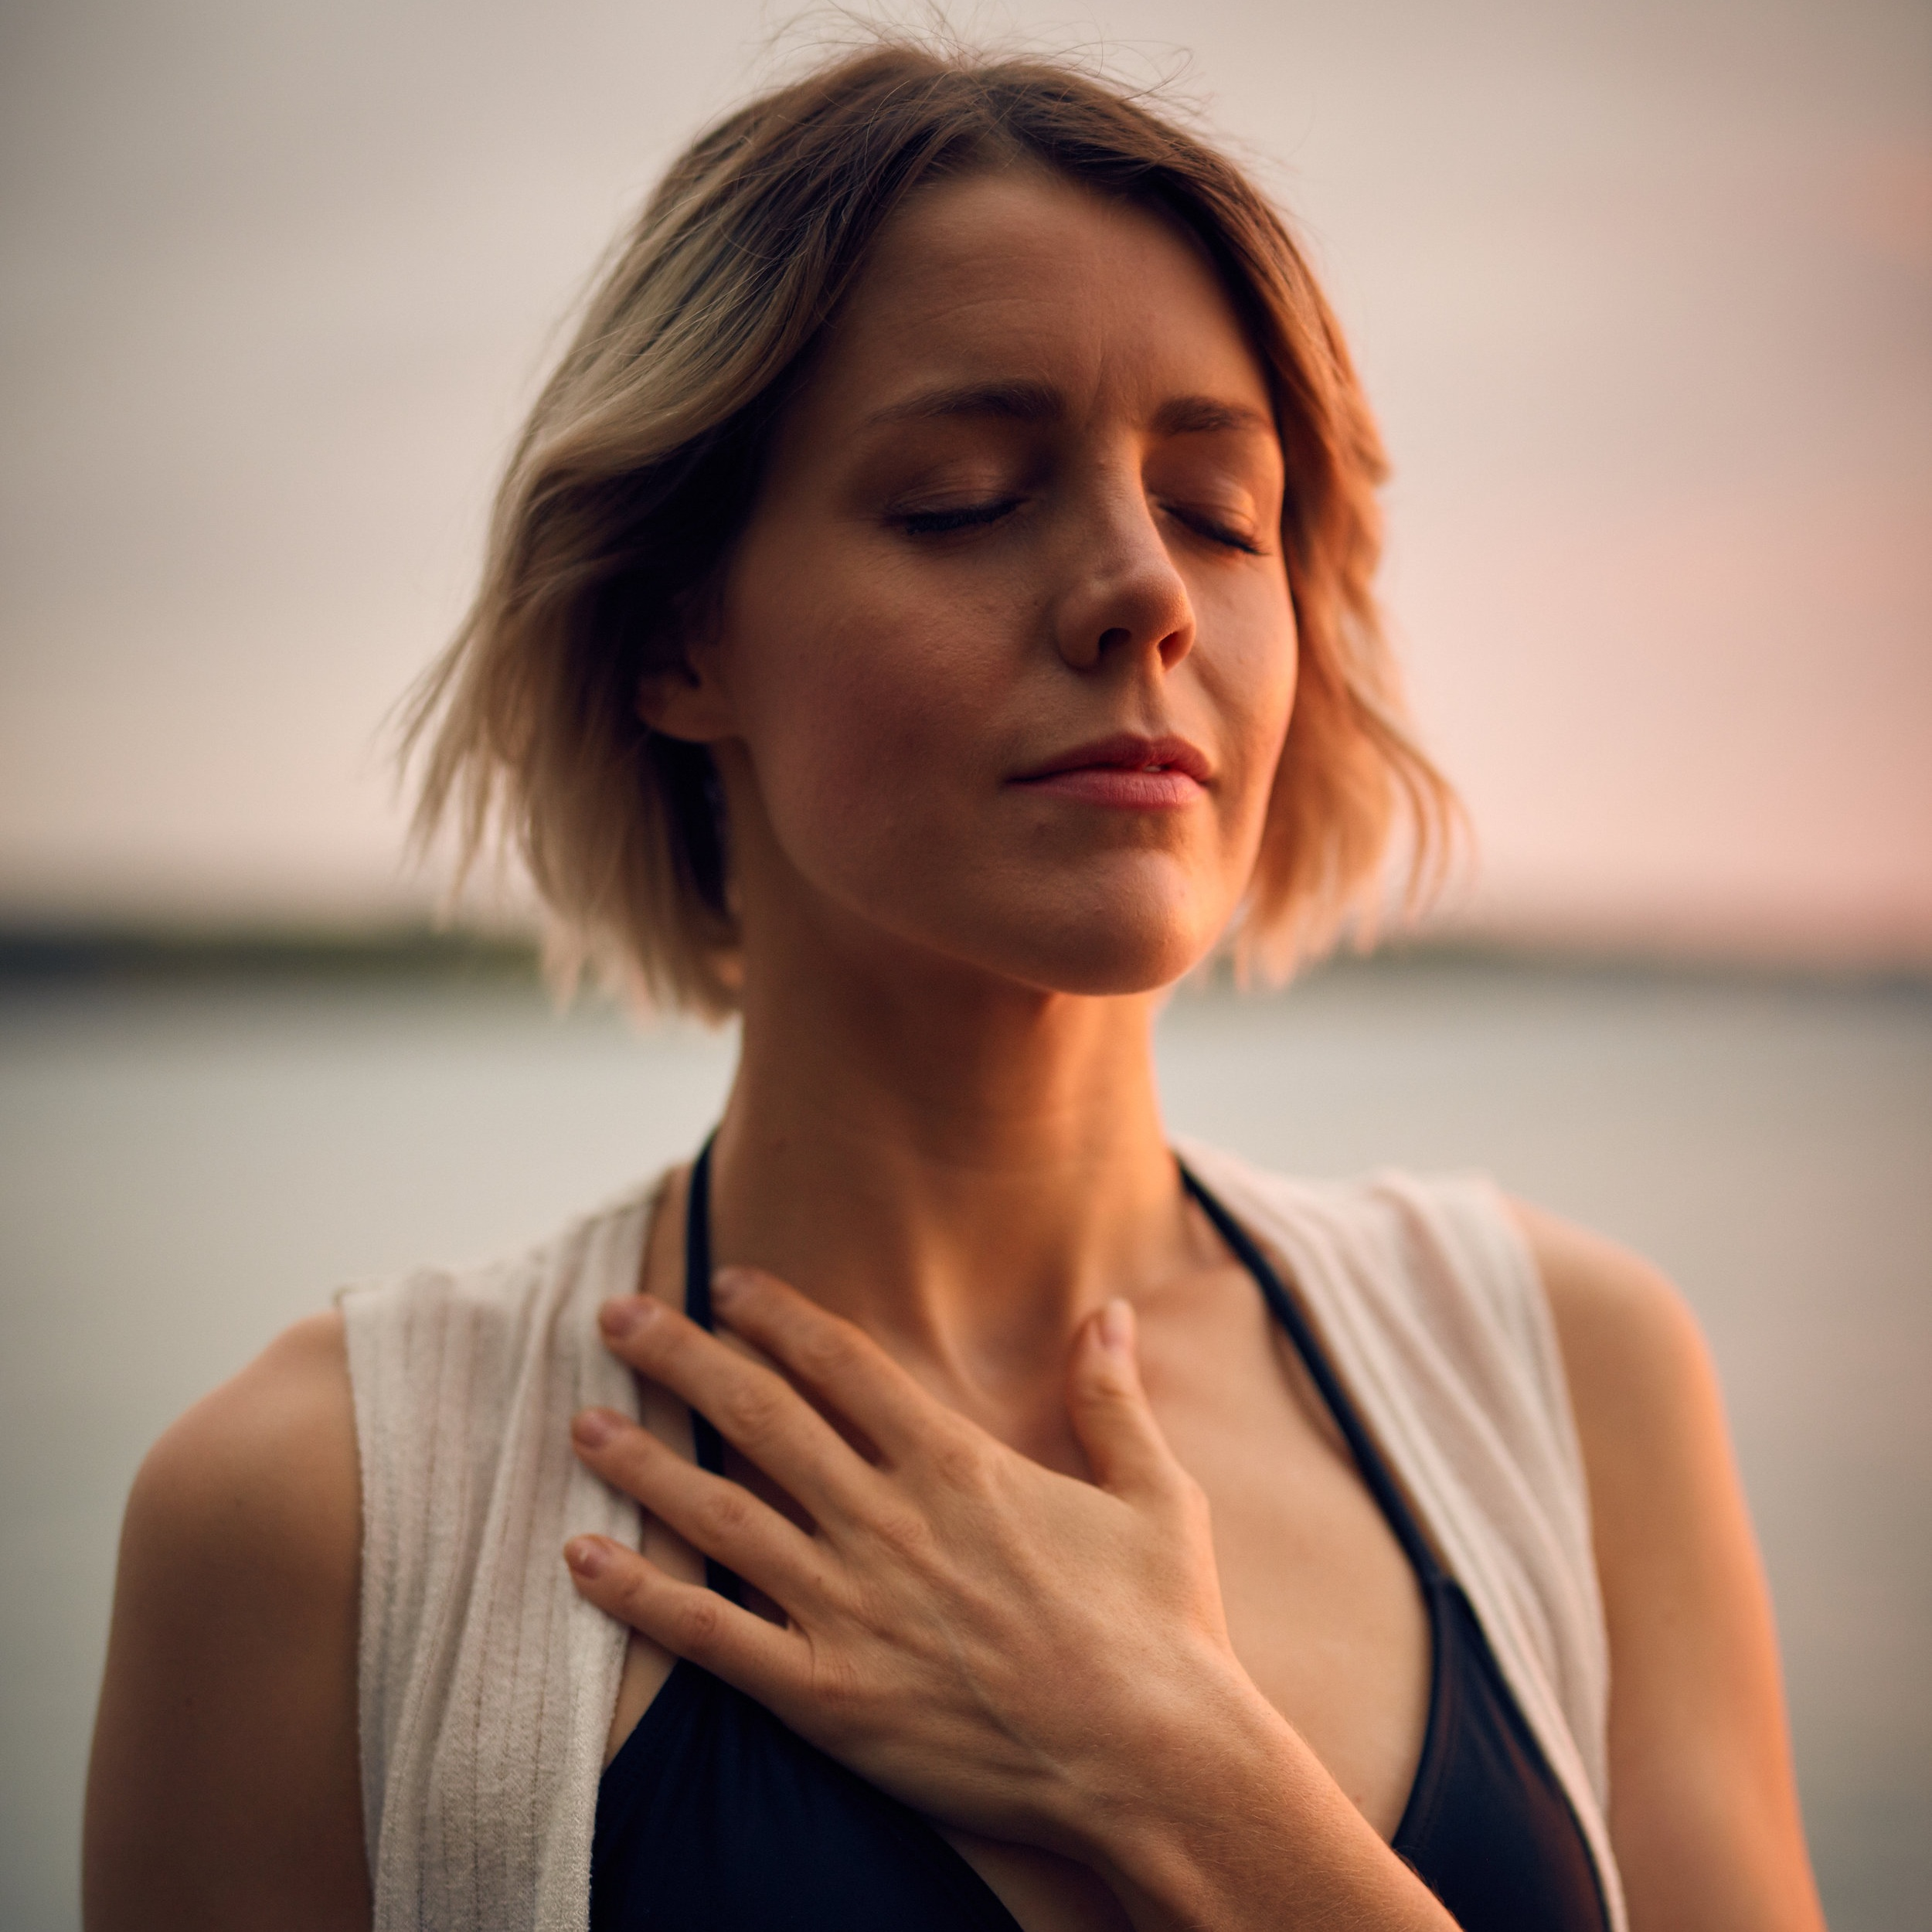 Woman with hand on her chest meditating. Energy healing Charlotte, NC